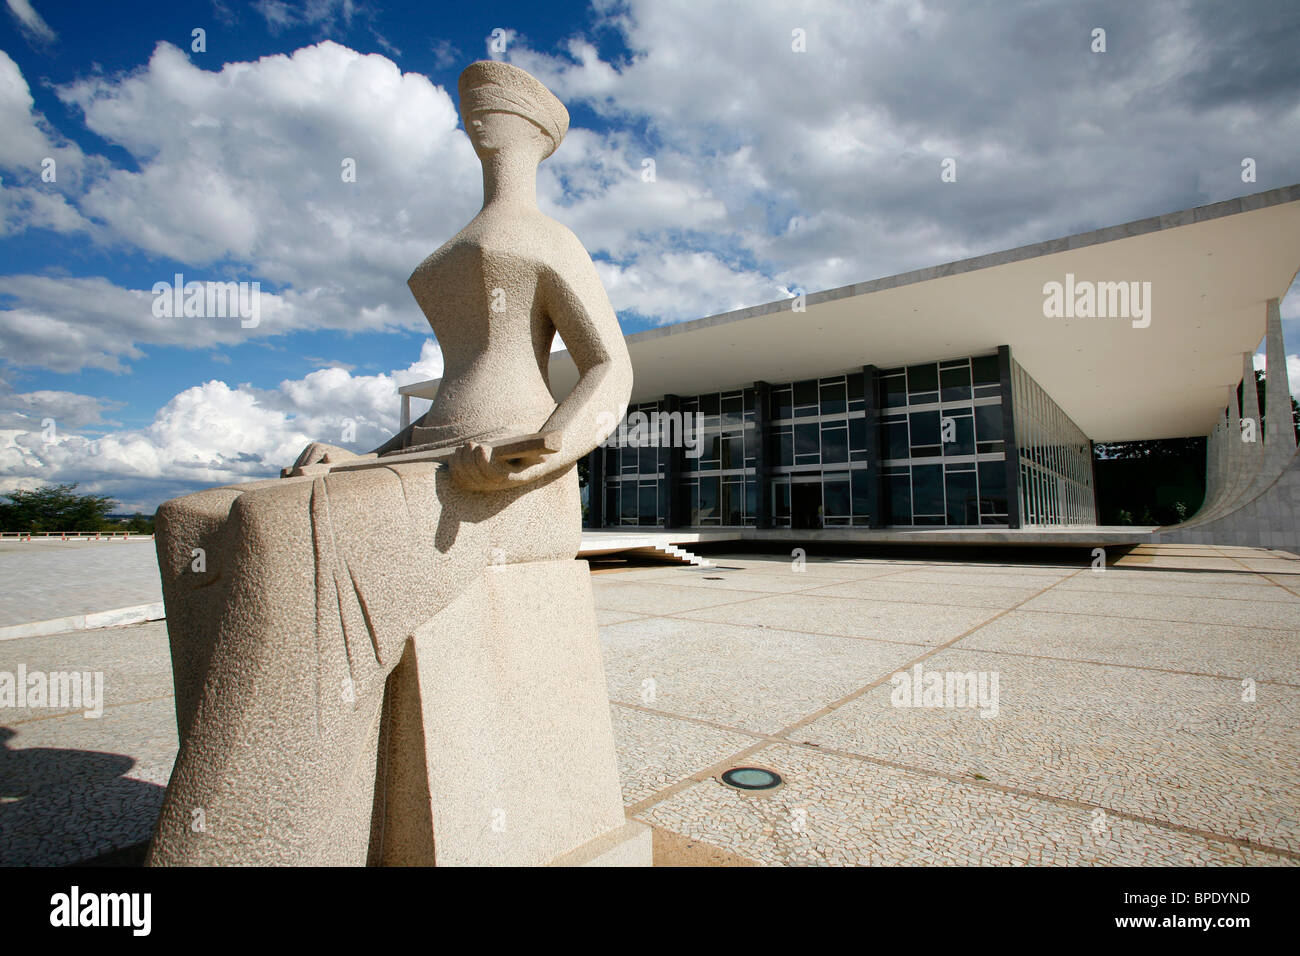 Justice sculpture infront of the Supremo Tribunal Federal or Supreme Federal Tribunal, Brasilia, Brazil. - Stock Image